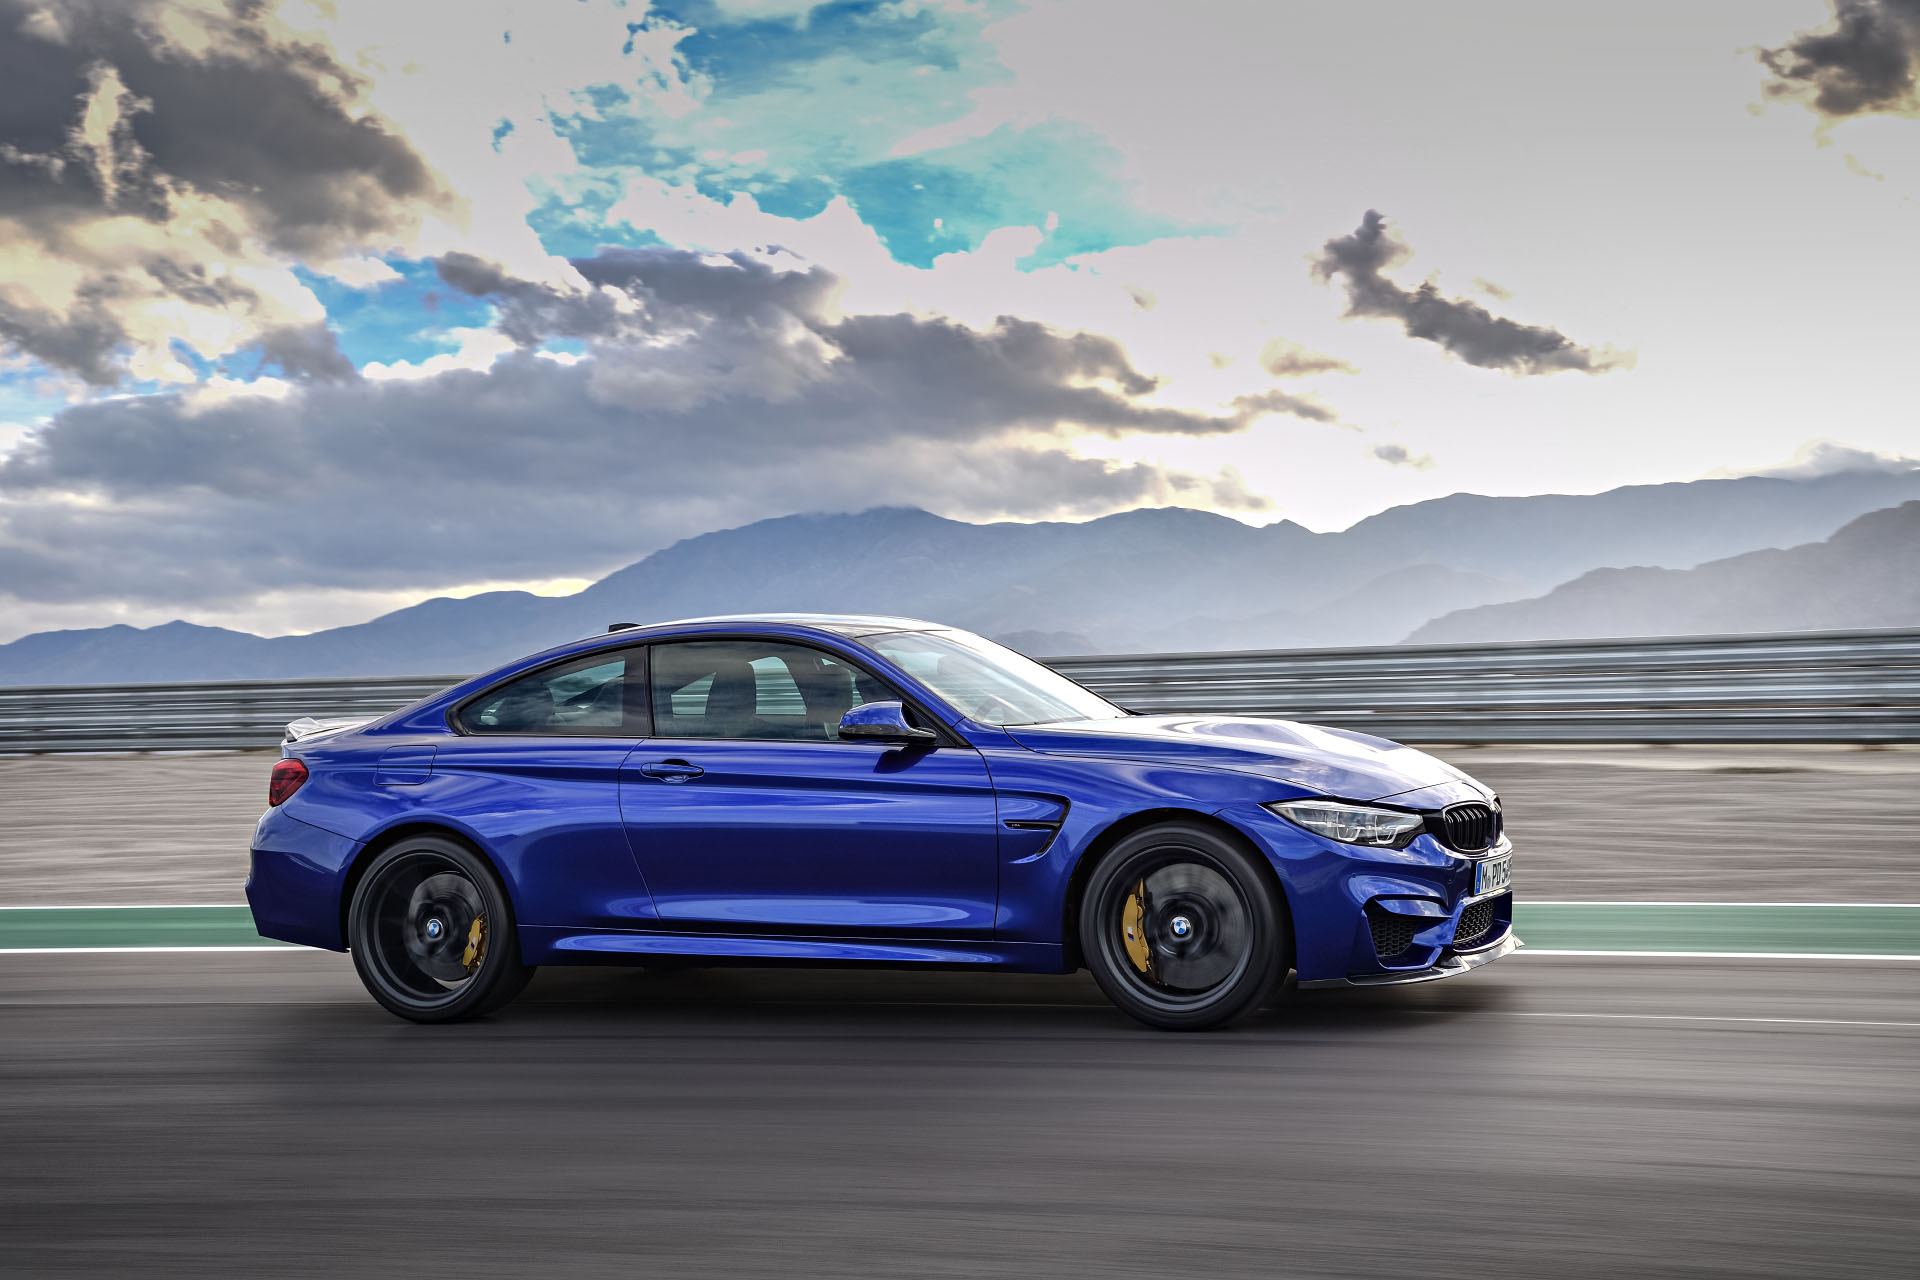 2017 shanghai preview the bmw m4 cs is a successor to previous m3 competition sport models. Black Bedroom Furniture Sets. Home Design Ideas